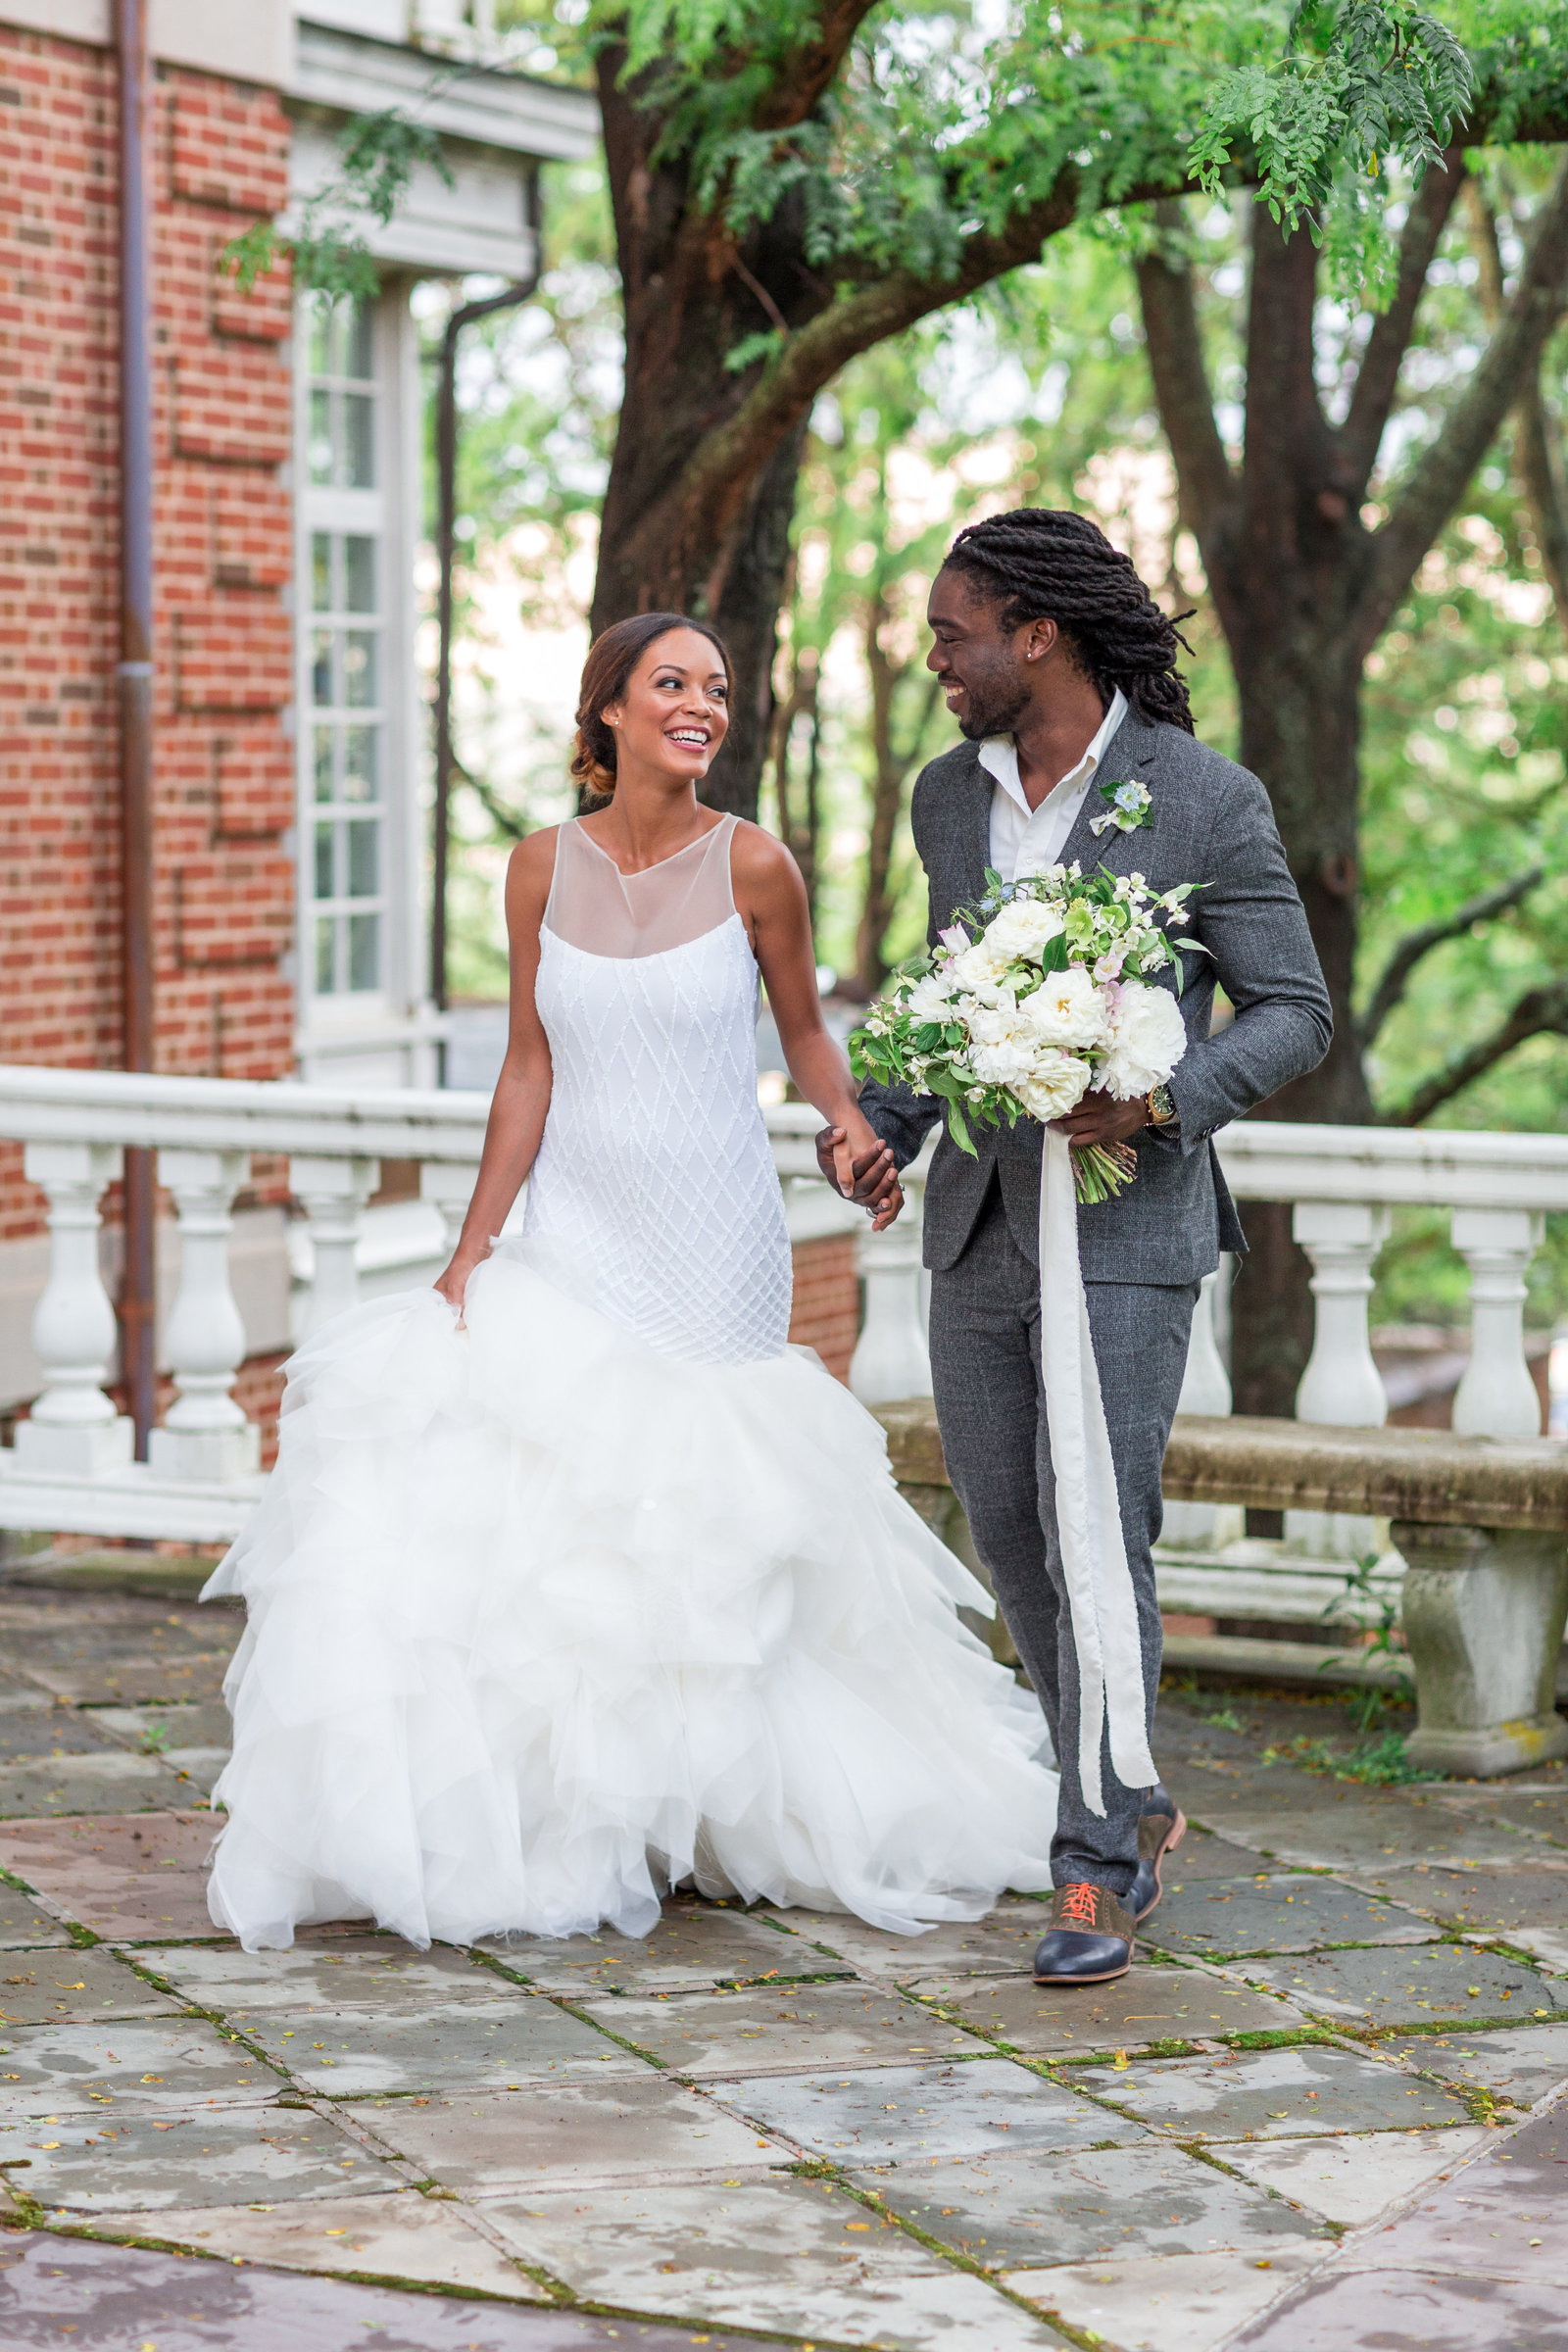 Chasing Light Workshop_Strathmore Mansion_Bethesda MD_Washington DC Wedding Photographer_Rachel Word Photography-62